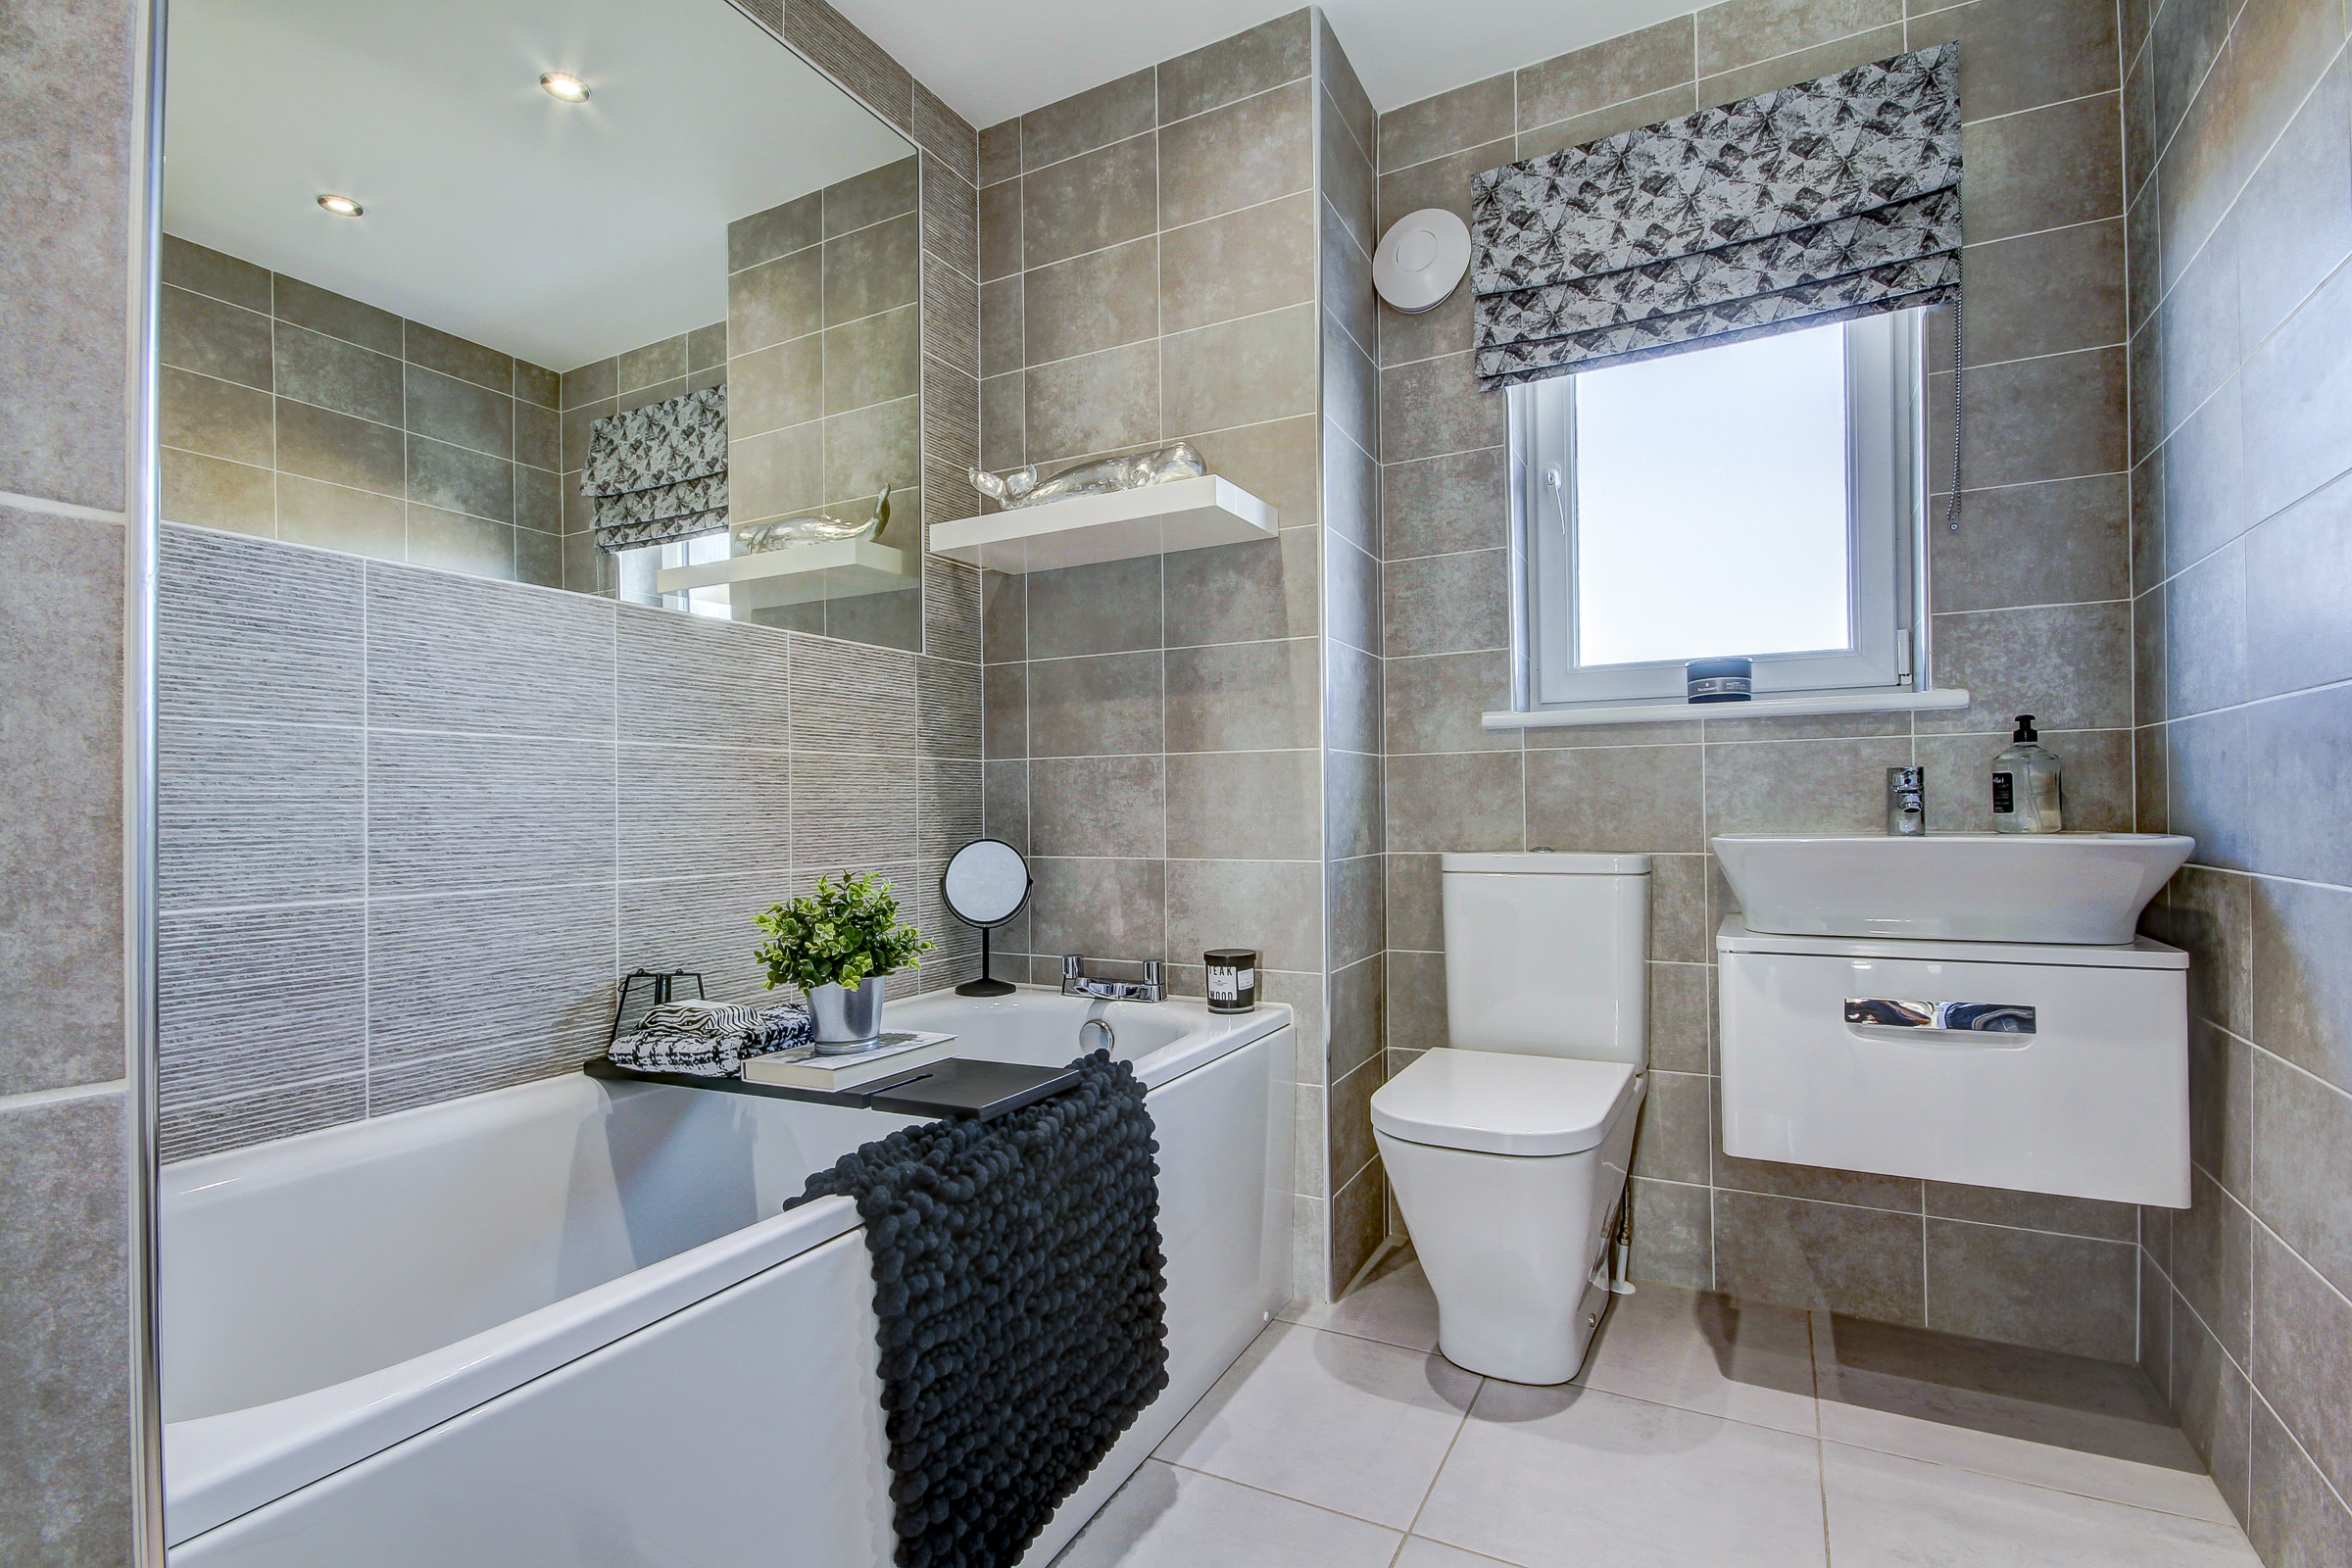 TWES_Calderwood _Fairbairn_Bathroom